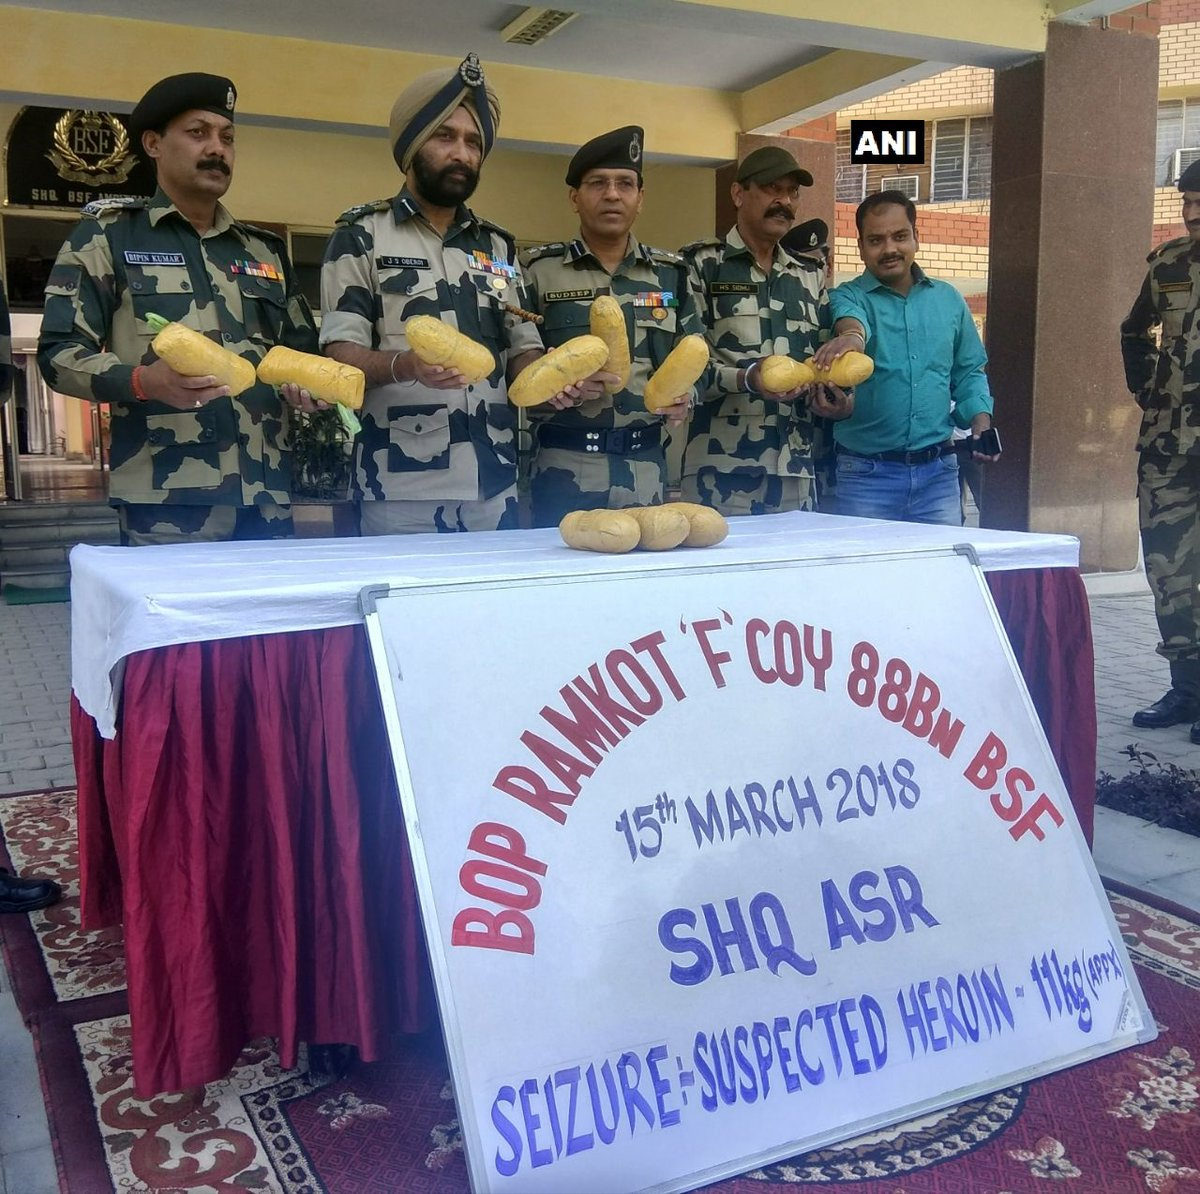 Amritsar: BSF recovers 11 Kg heroin from Ramkot area near Indo -Pak border. The smugglers fled after being challenged by the BSF.